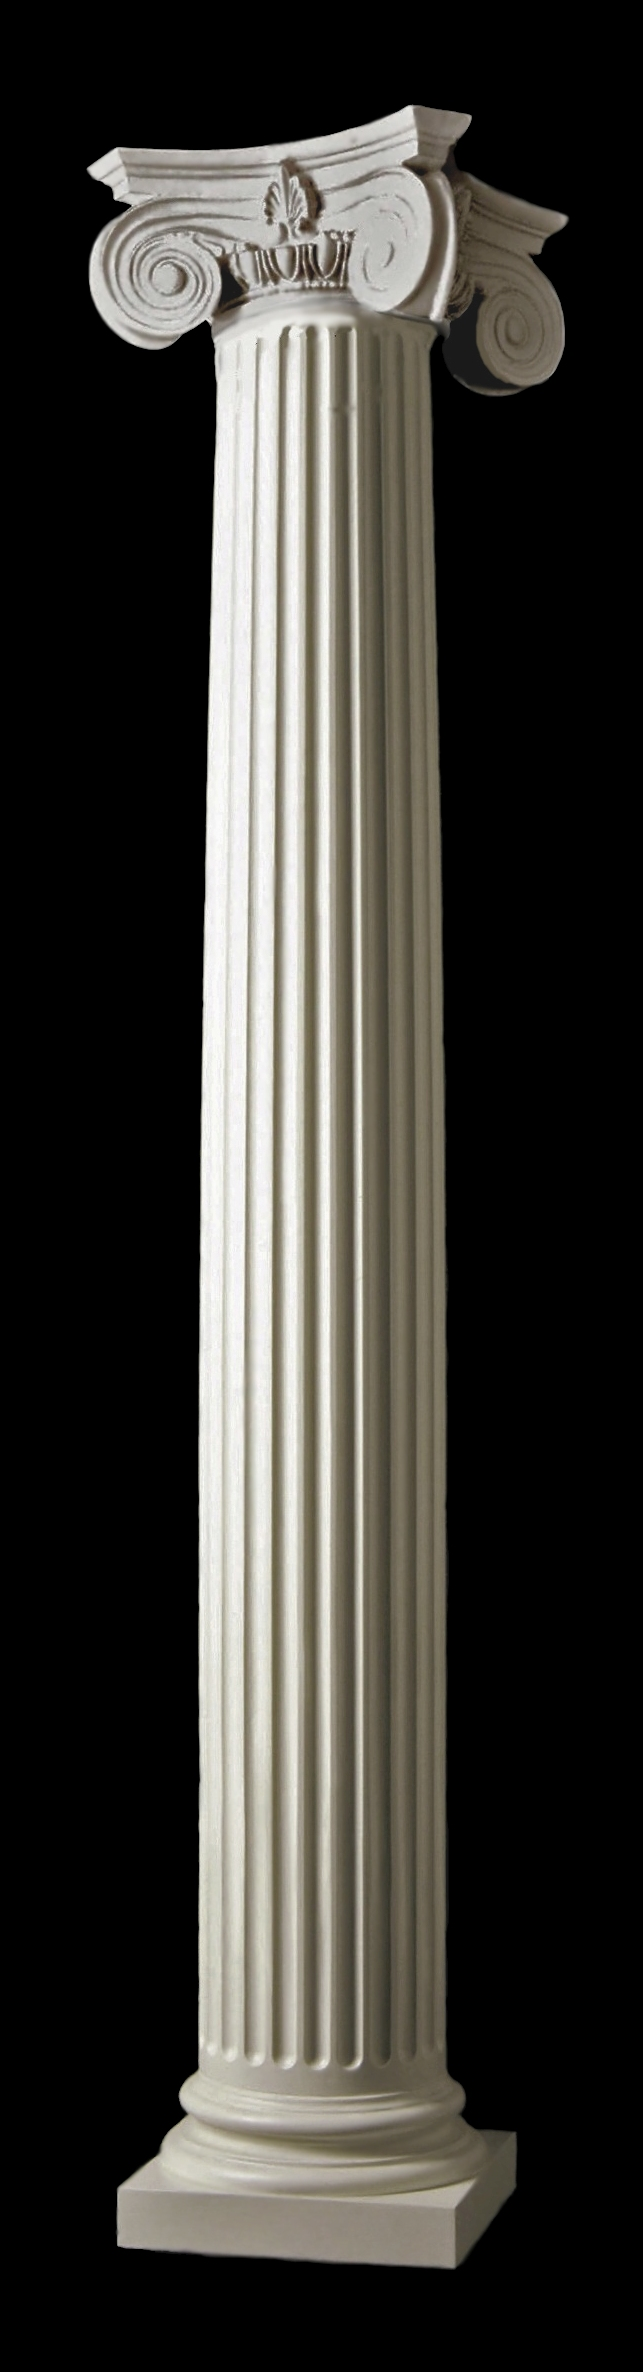 Image Result For Turncraft Columns